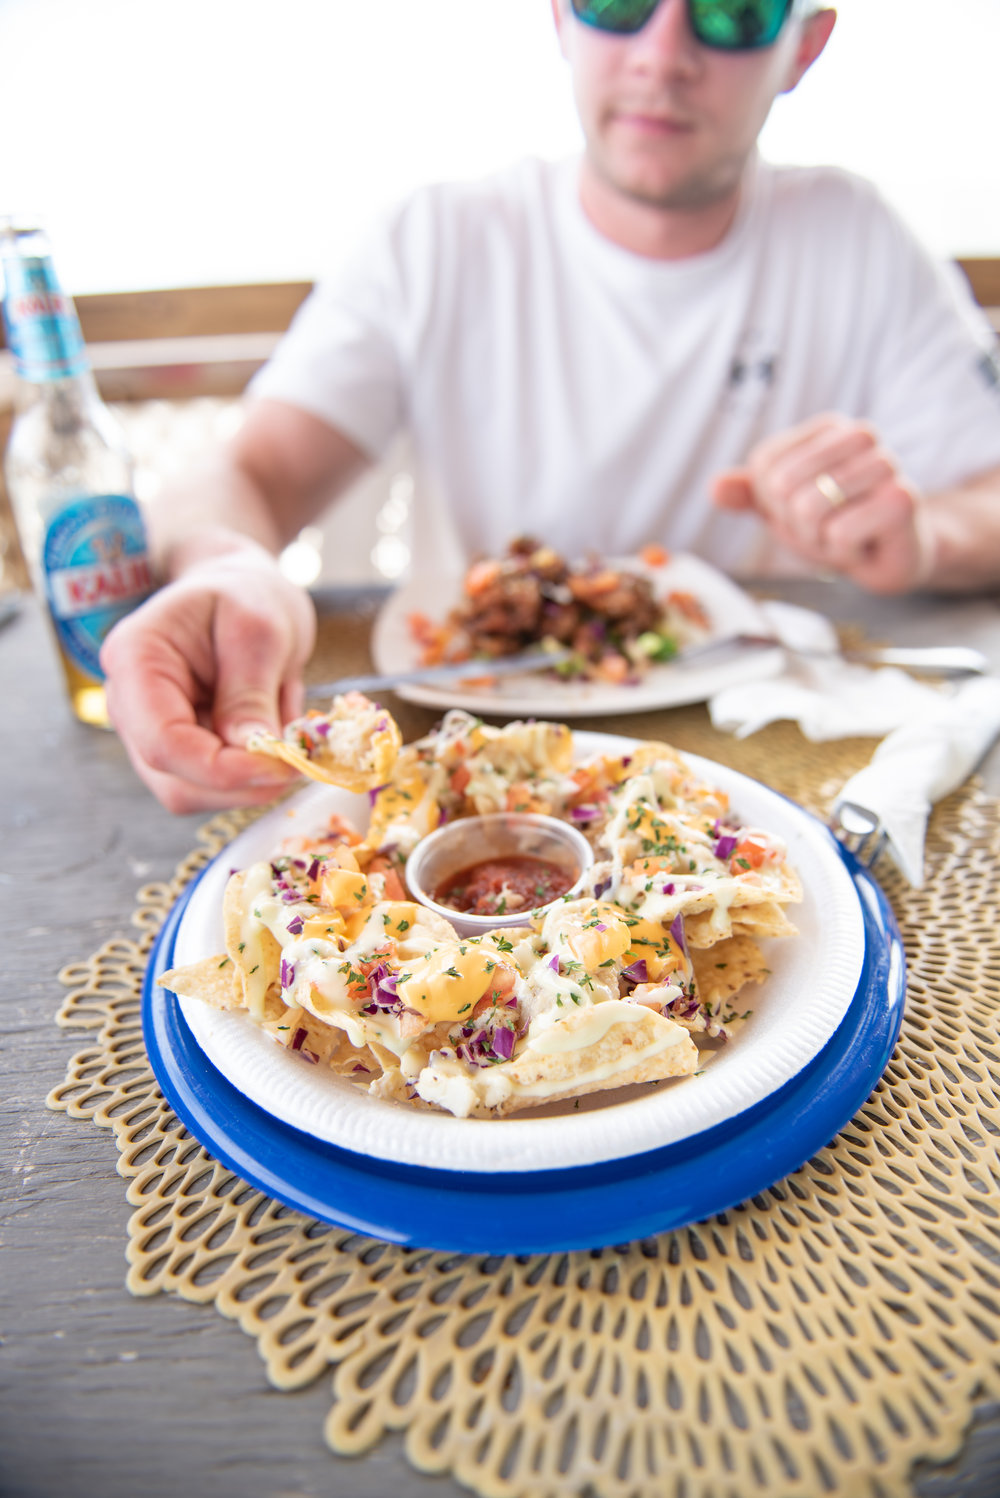 We were told we HAD to try the conch nachos at Tropic Breeze Restaurant, and we were so glad we did! They were absolutely delicious! So were the wings!